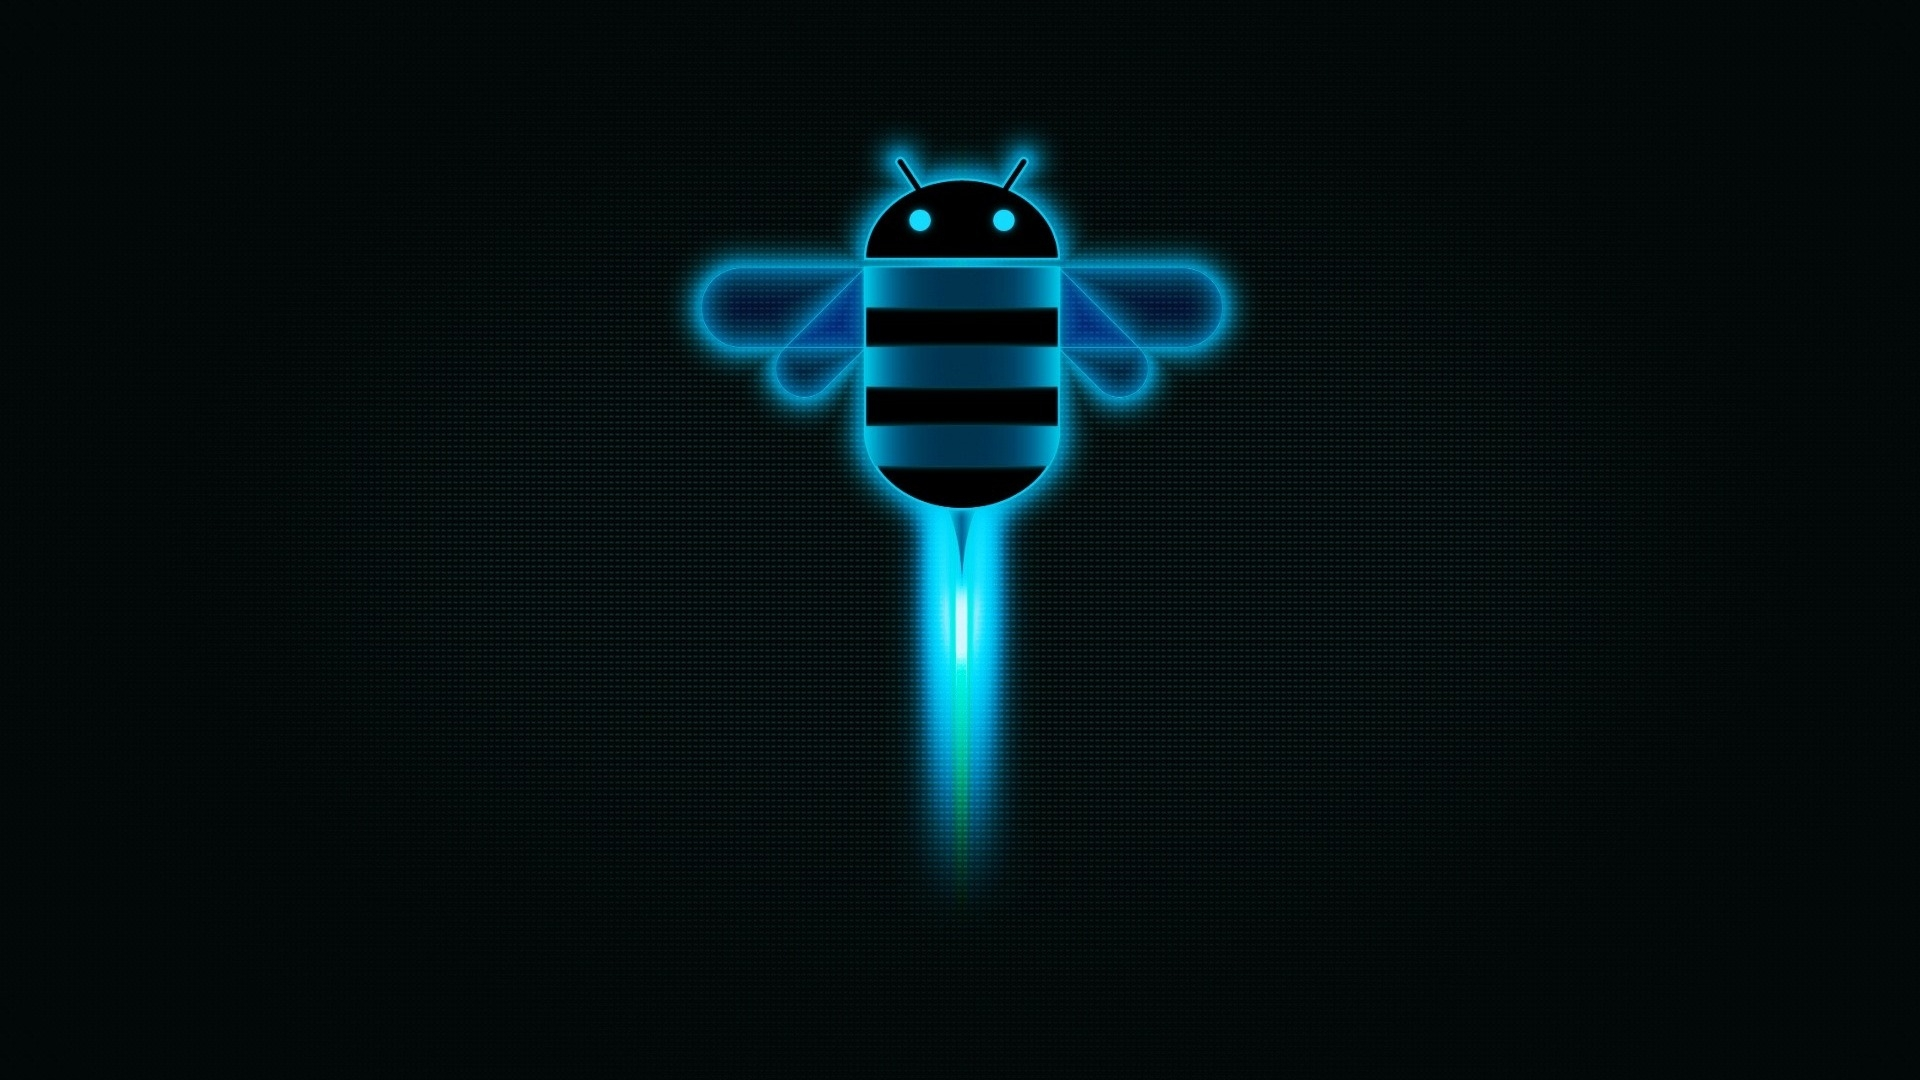 Blue Beetle Android Hd Picture